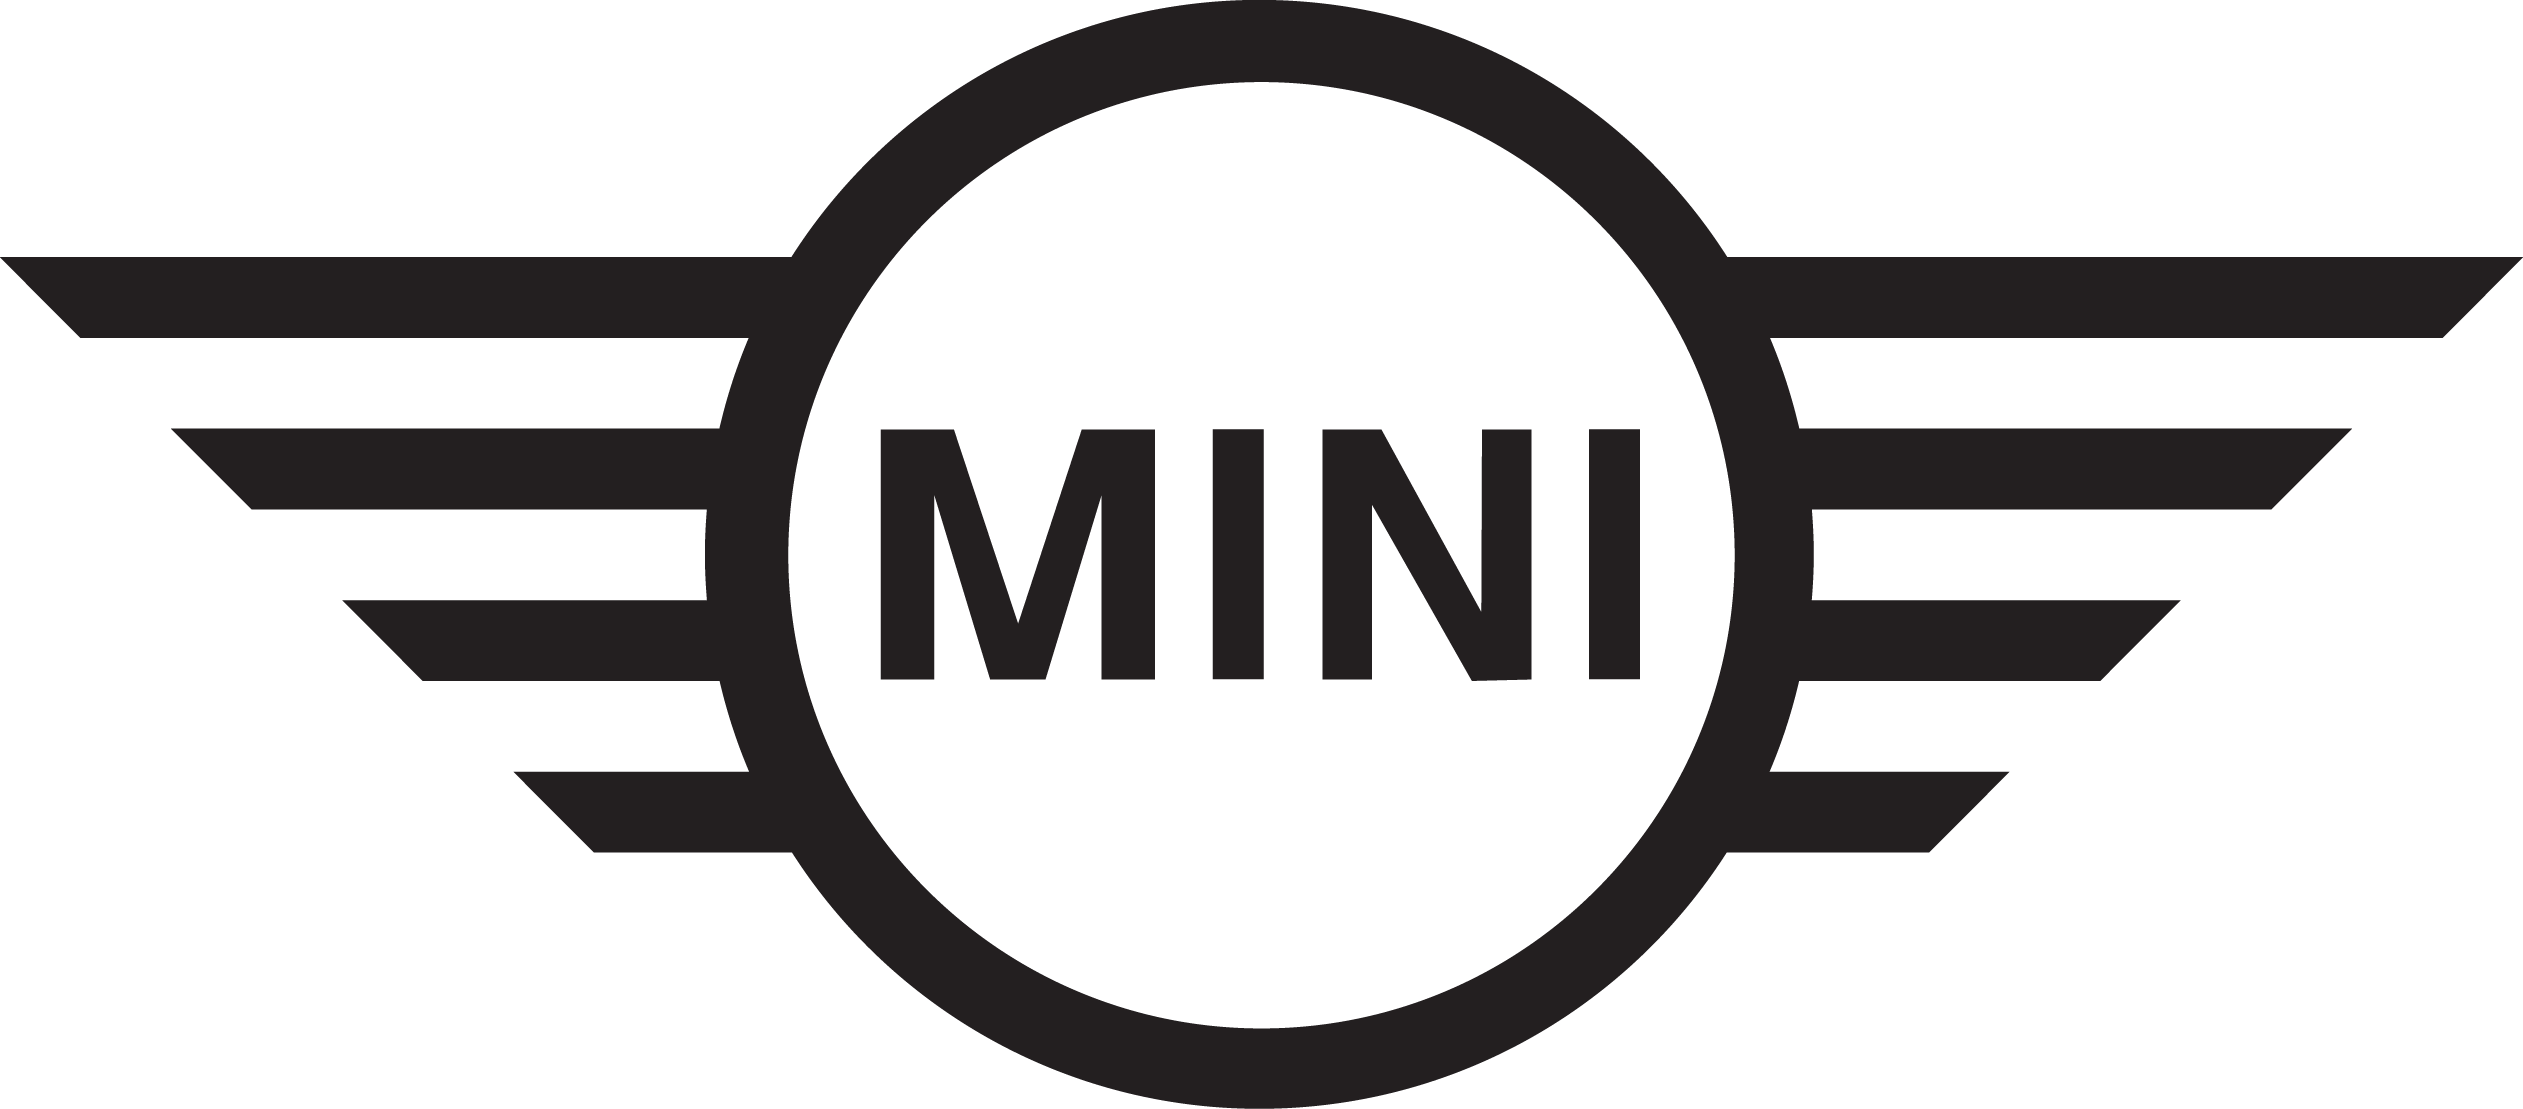 mini logo  bmw mini cooper  png svg download  logo  icons disney cars clip art for dinoco disney cars clipart